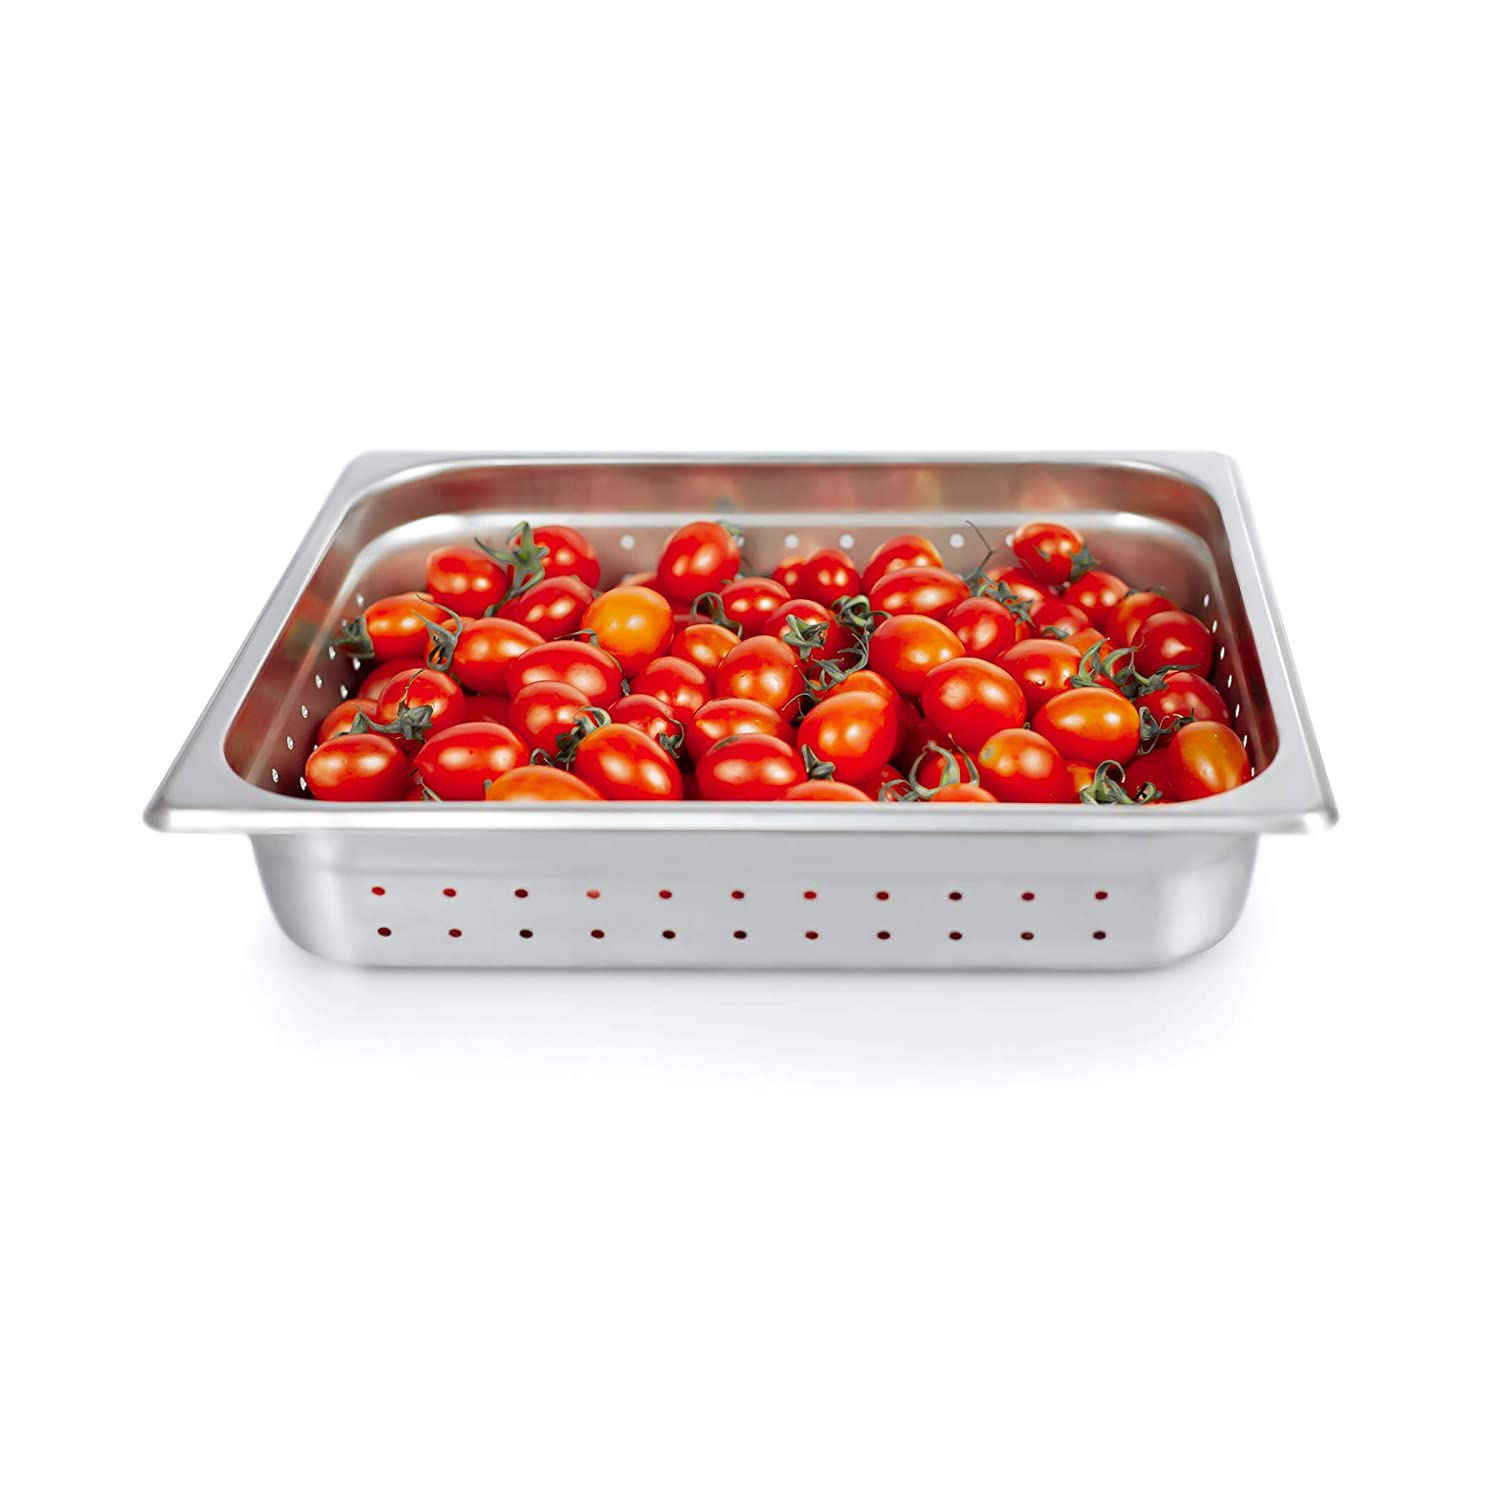 """2 1/2"""" Deep Steam Table Pan Half Size, Kitma 4 Quart Stainless Steel Anti-Jam Standard Weight Hotel GN Food Pans - NSF (12.8""""L x 10.43""""W)"""